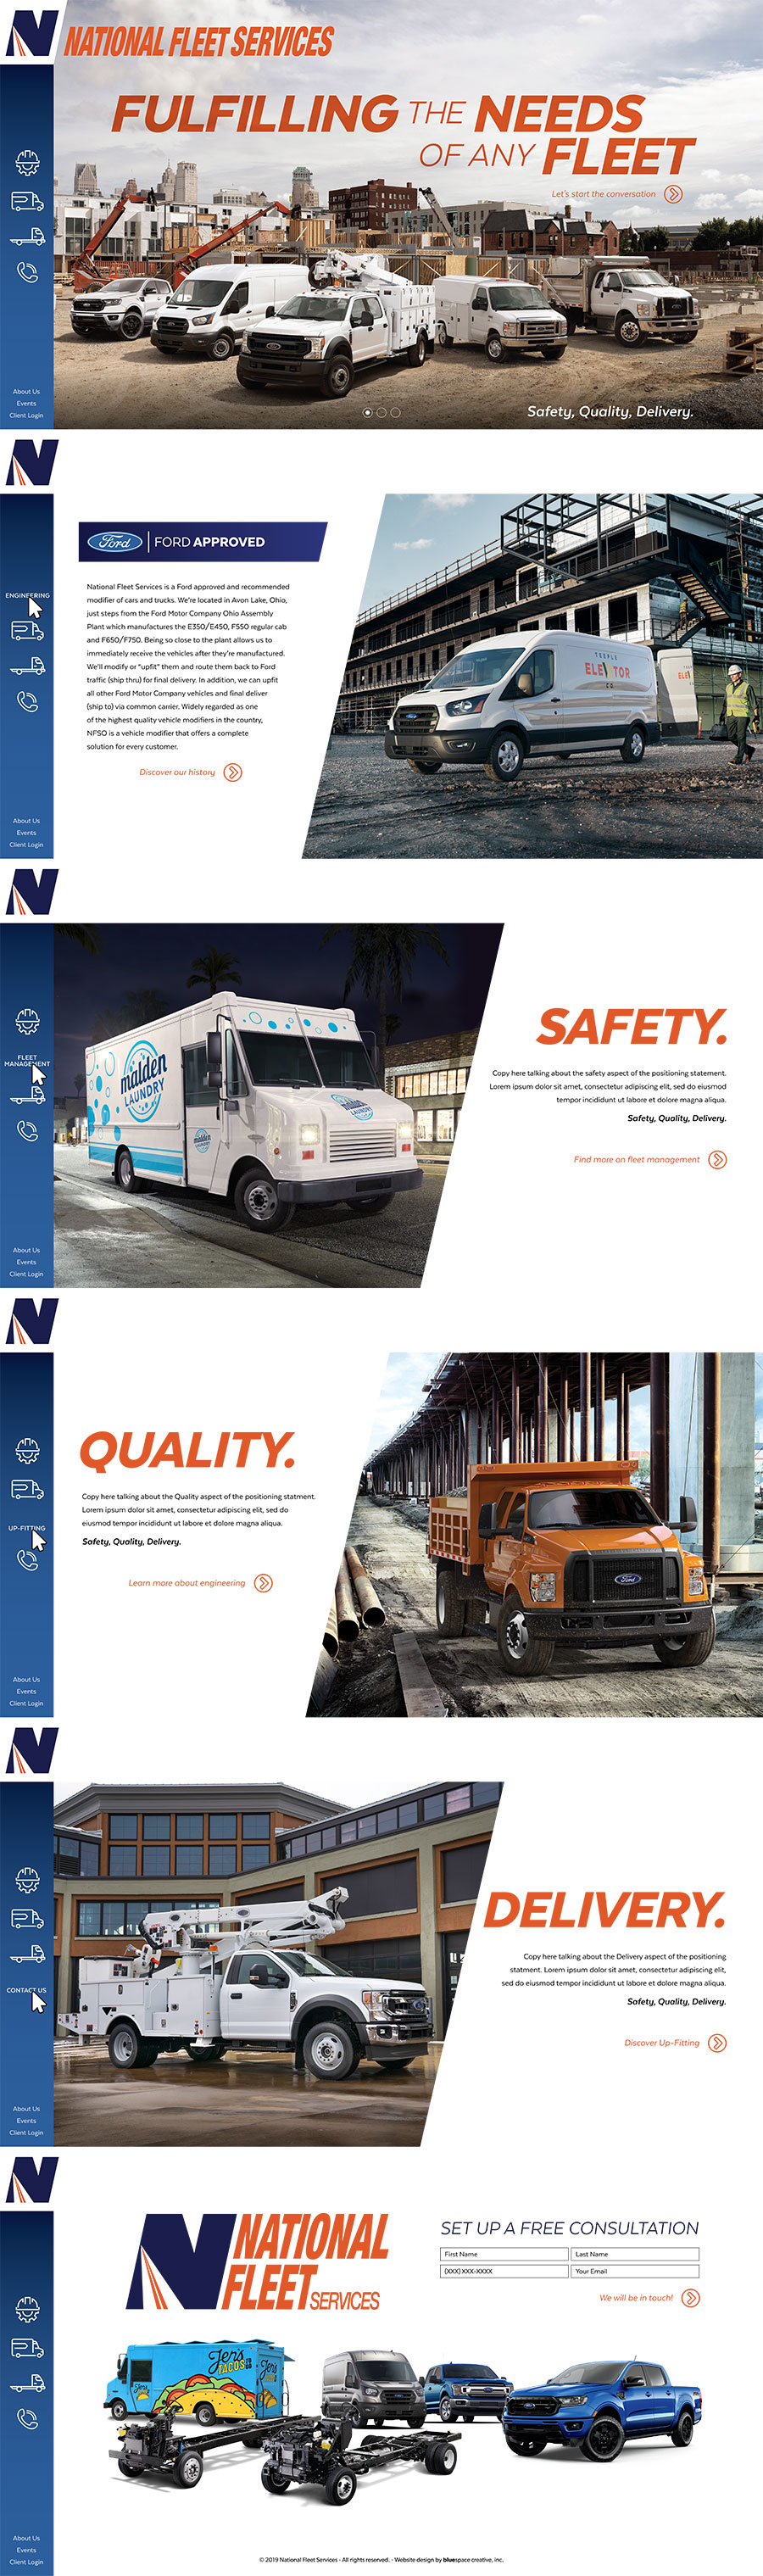 National Fleet Service Website Design